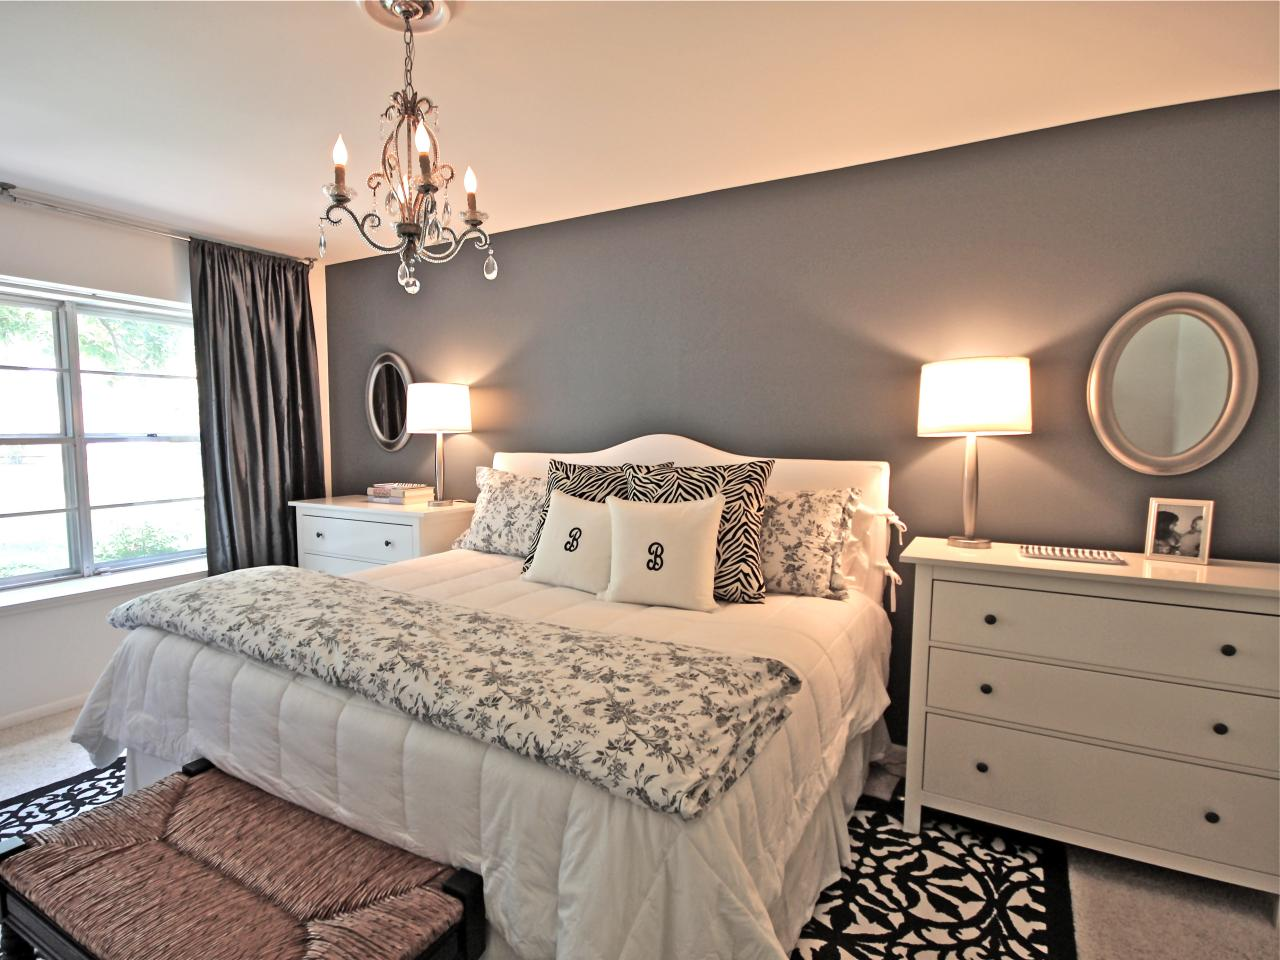 Glamorous Gray Bedroom Design Adorable Purple And Room Girls Off White Furniture Ideas Modern Designs Inspiration Tranquil Sets Kitchen Living Teen Apppie Org